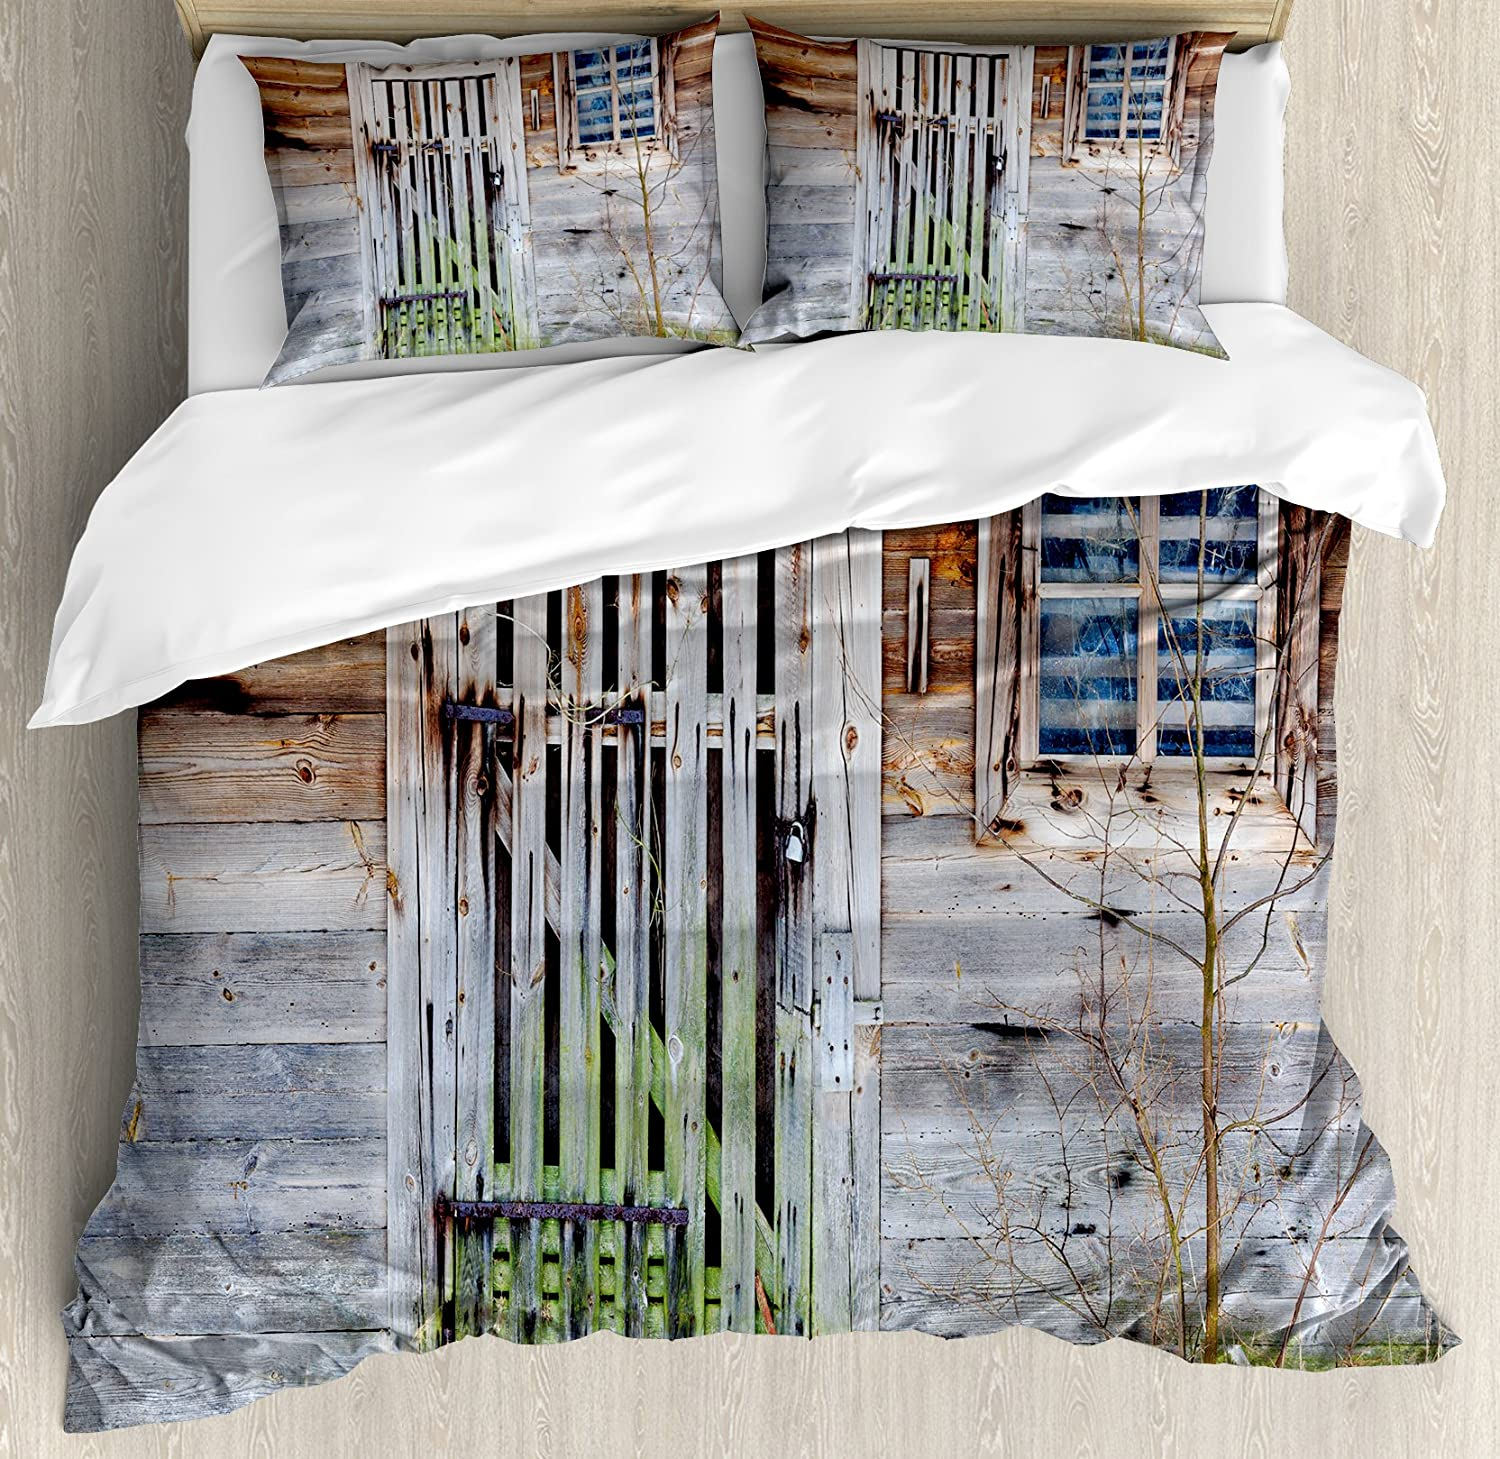 Ambesonne Prehistoric Country Duvet Cover Set, Retro Neglected Old Farmhouse Rustic Wooden Door and Window Rural, Decorative 3 Piece Bedding Set with 2 Pillow Shams, King Size, Brown Green